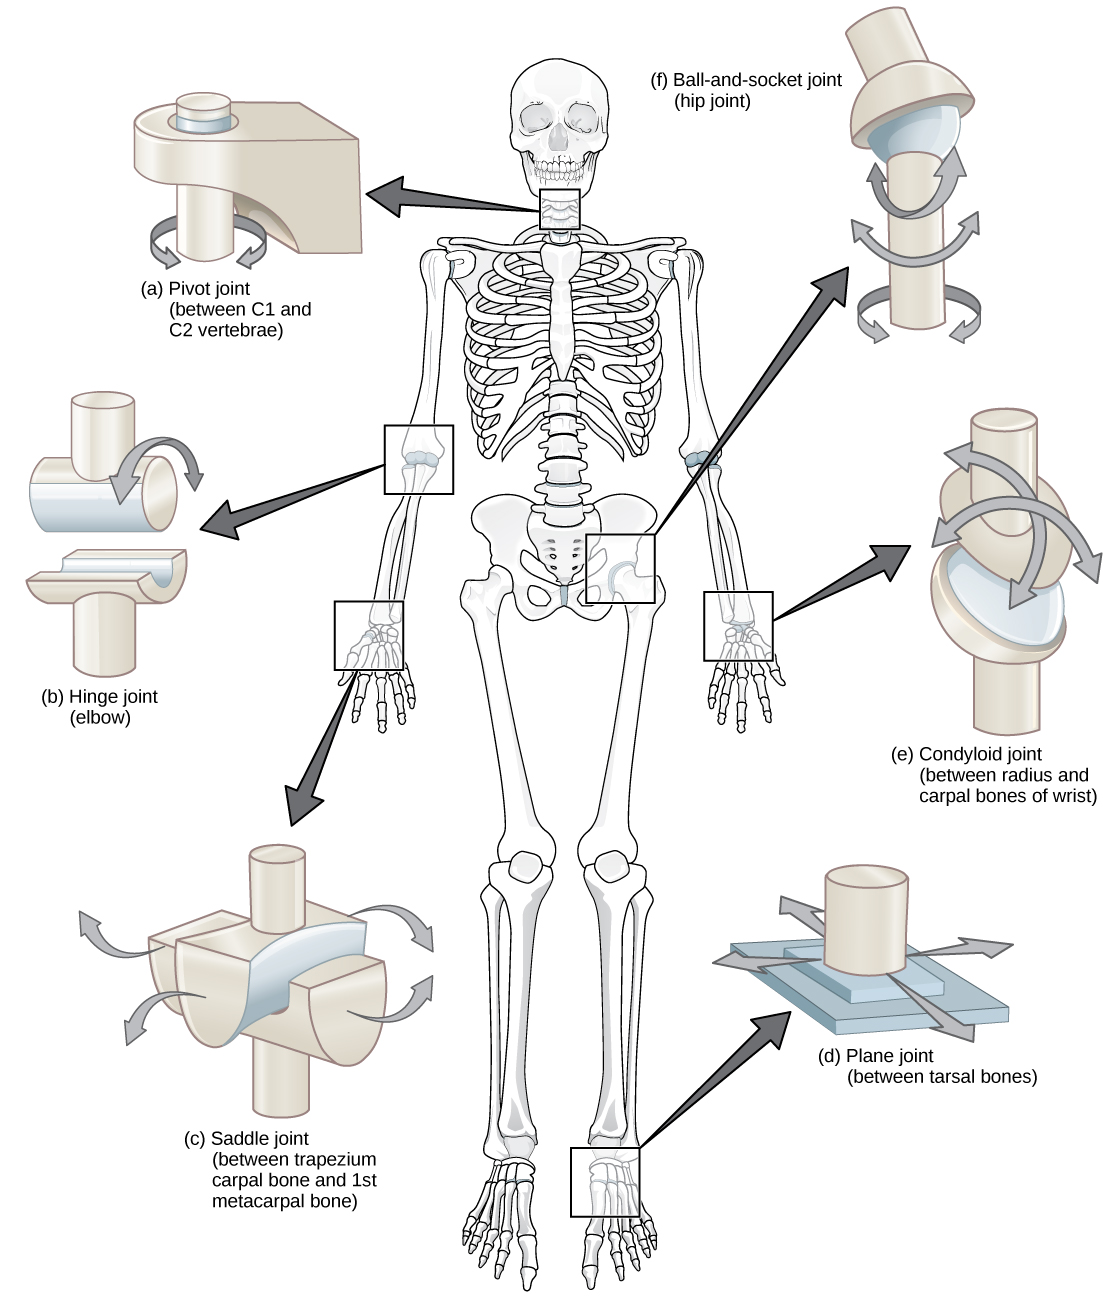 movements allowed by synovial joints diagram cat 3 wiring rj45 19 and skeletal movement  concepts of biology